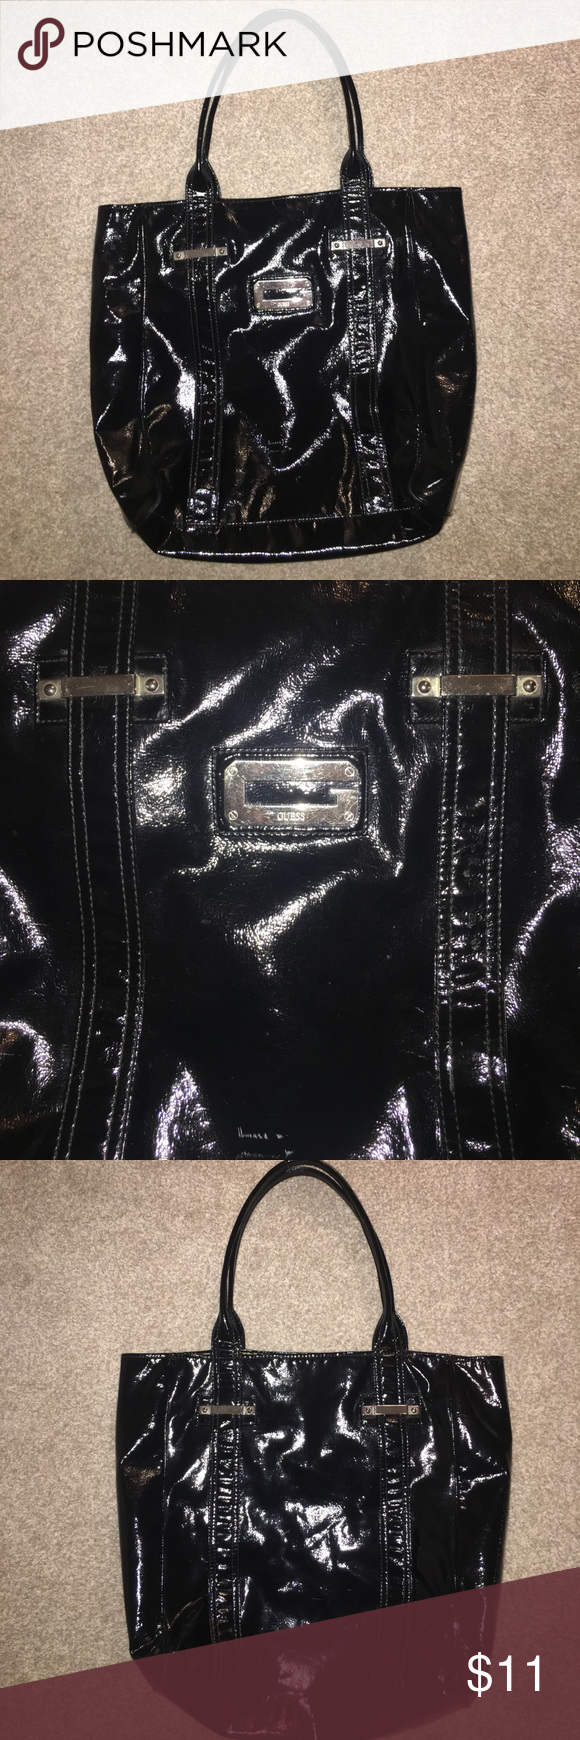 GUESS Large Black Tote Bag Good Condition. Minor Marks (see photo) 20